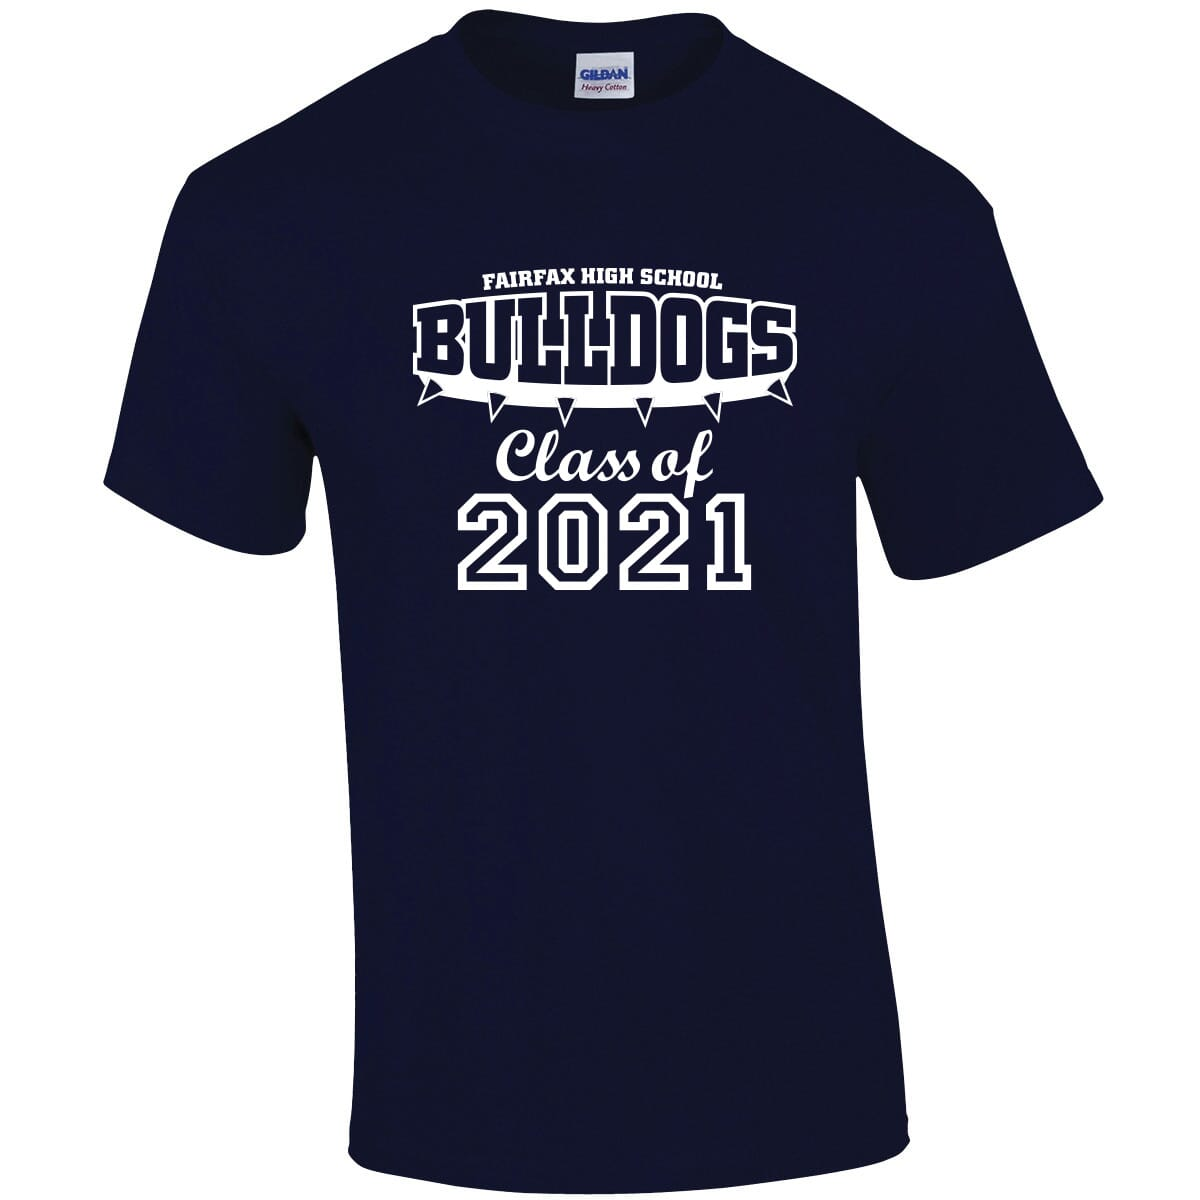 Navy t-shirt with graduation imprint